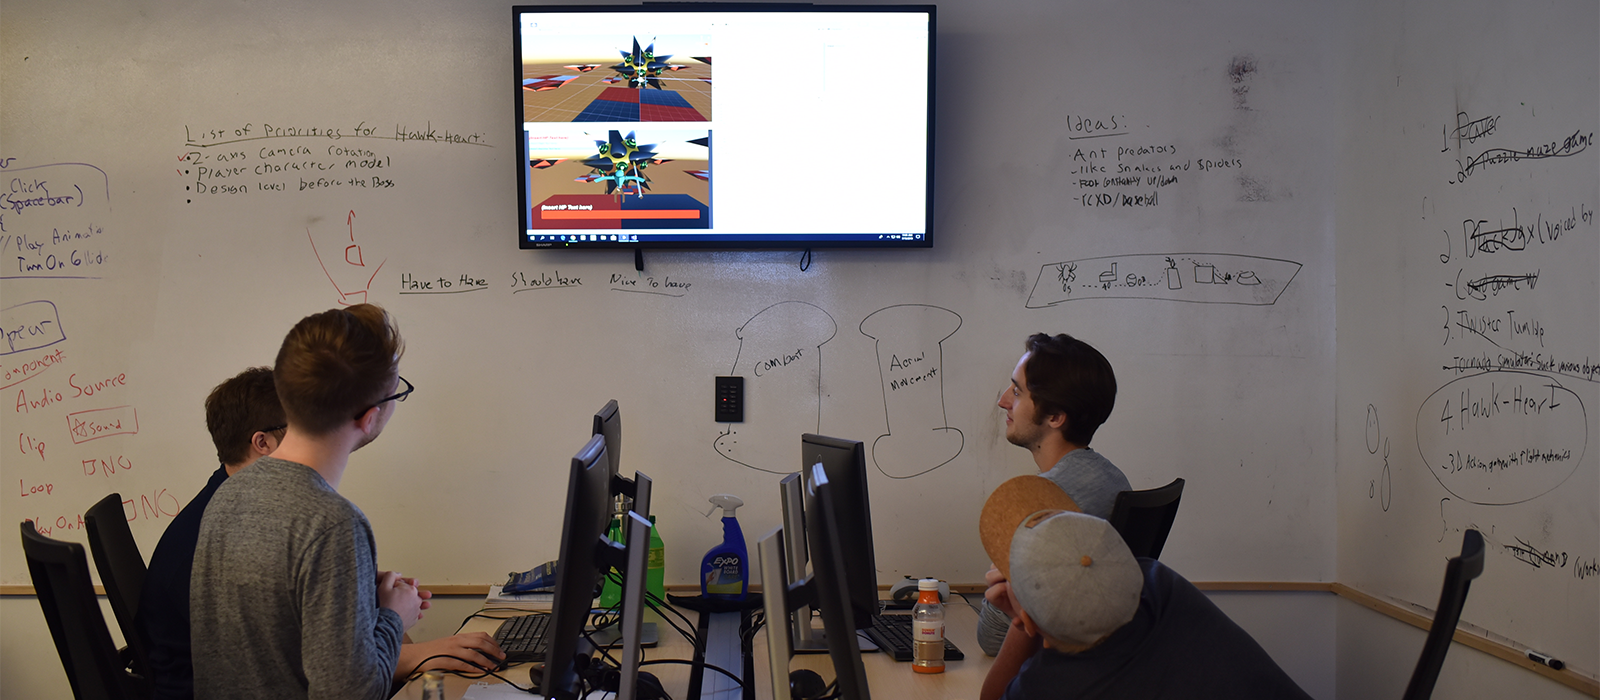 Students looking up at a screen showing video game assets